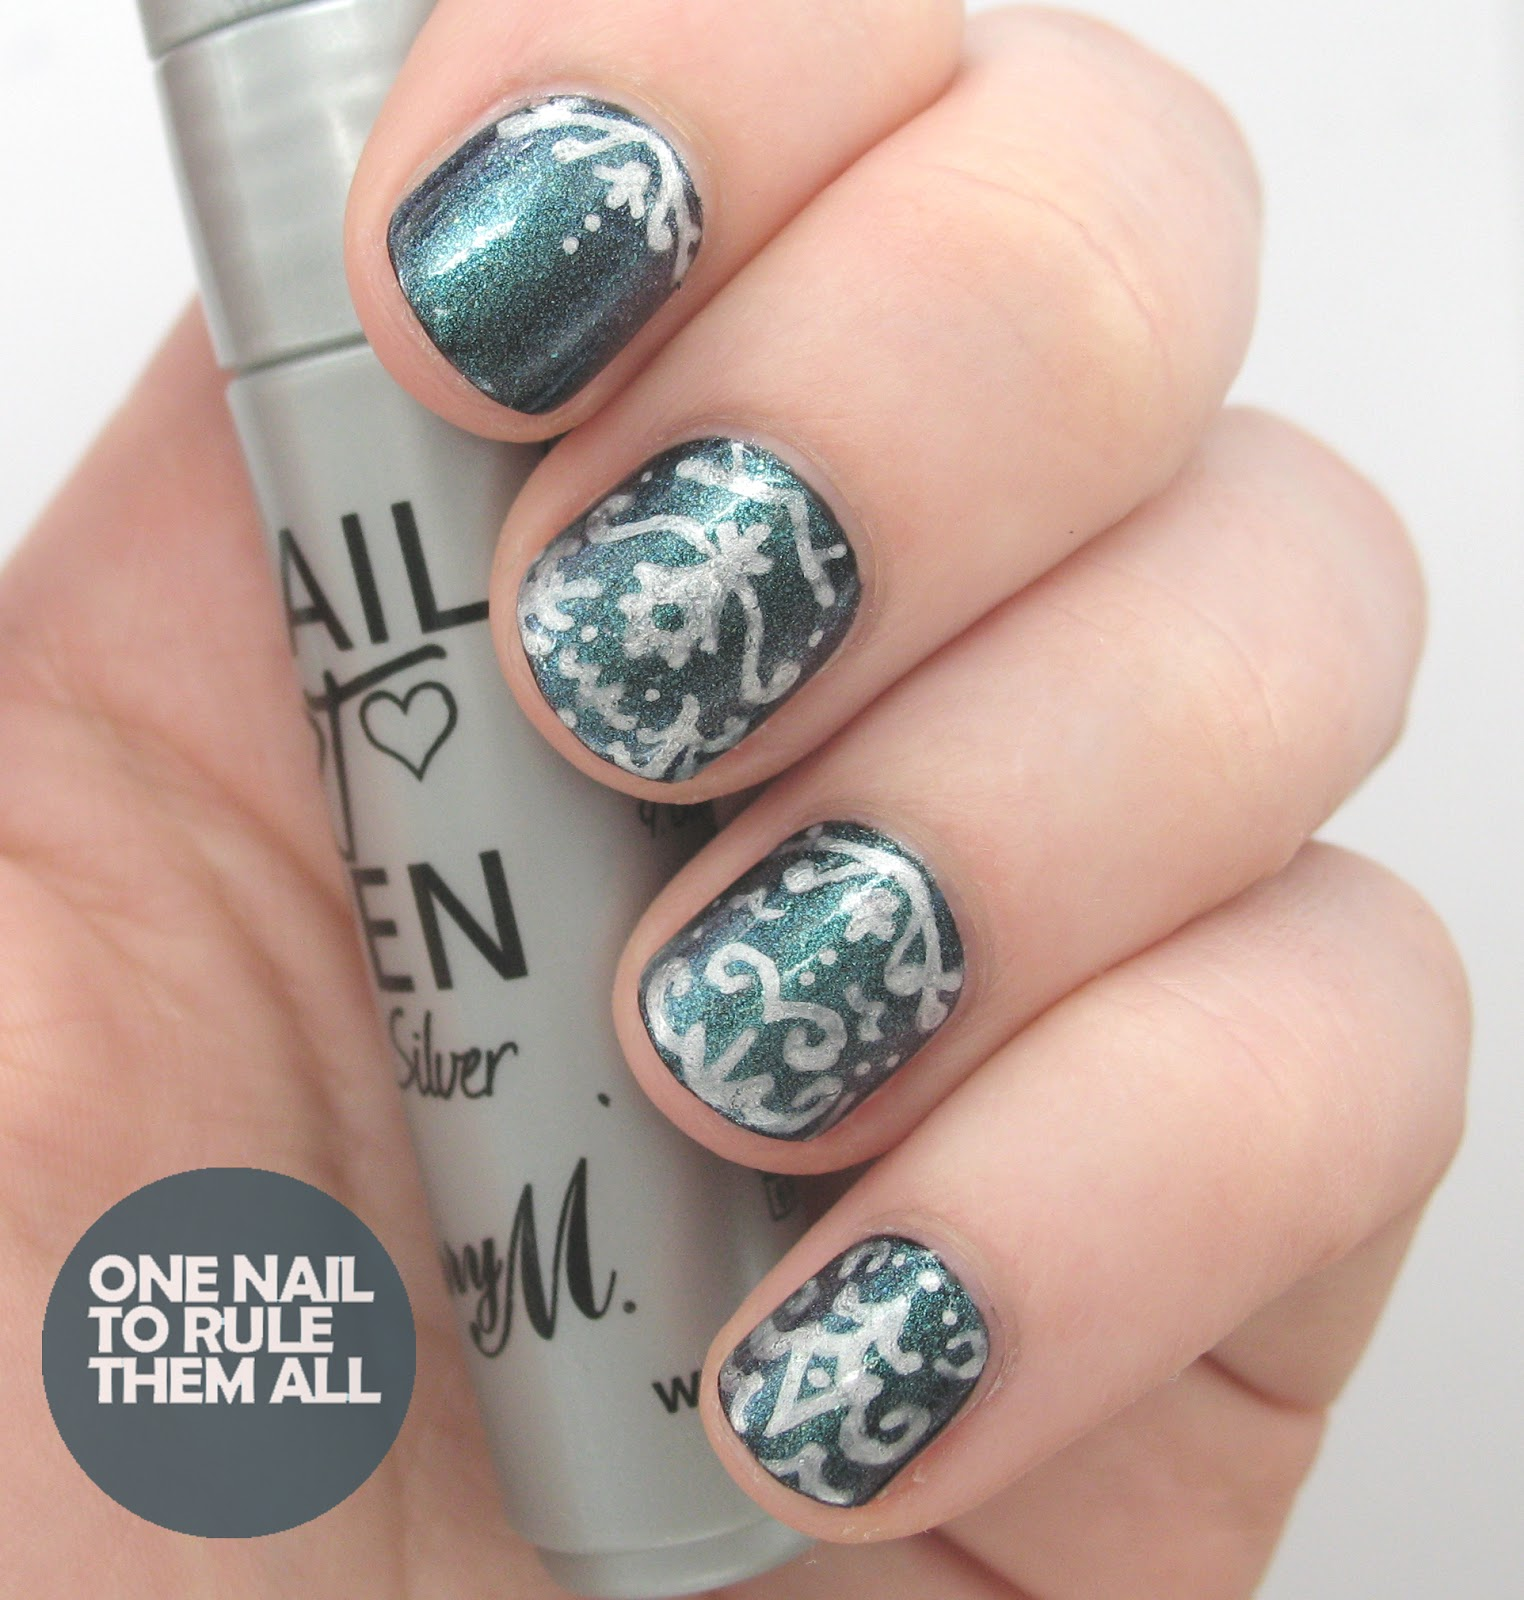 Nail Art Designs With Pen Gallery - easy nail designs for beginners ...